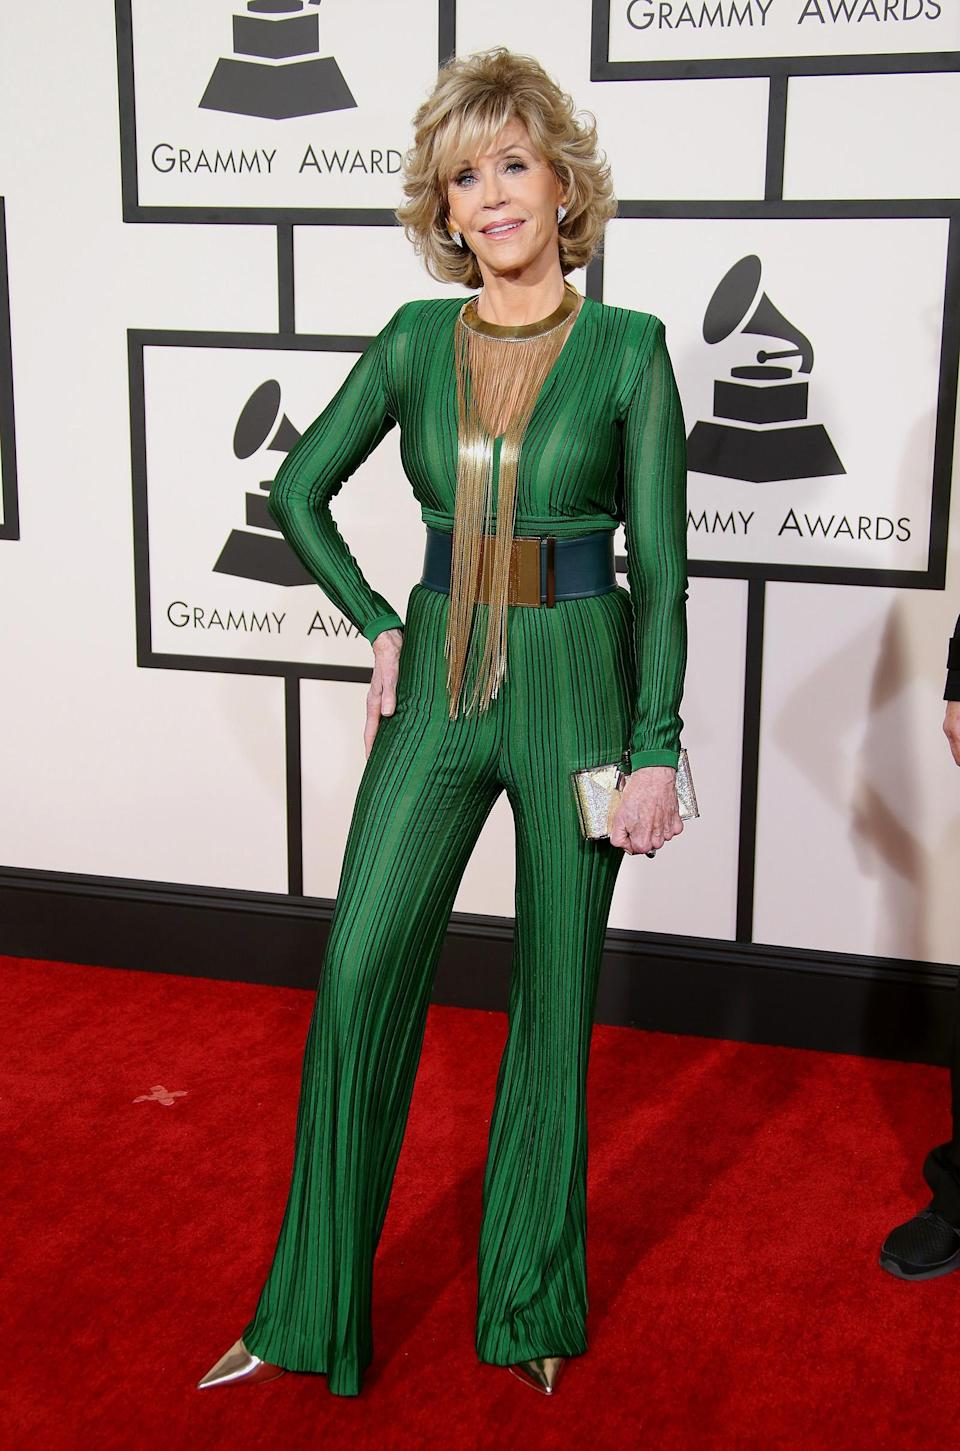 <p>The former fashion model has never lost her sense of style. Fonda wore this stunning emerald jumpsuit at the 57th Annual Grammy Awards. (Photo: Dan MacMedan/WireImage) </p>